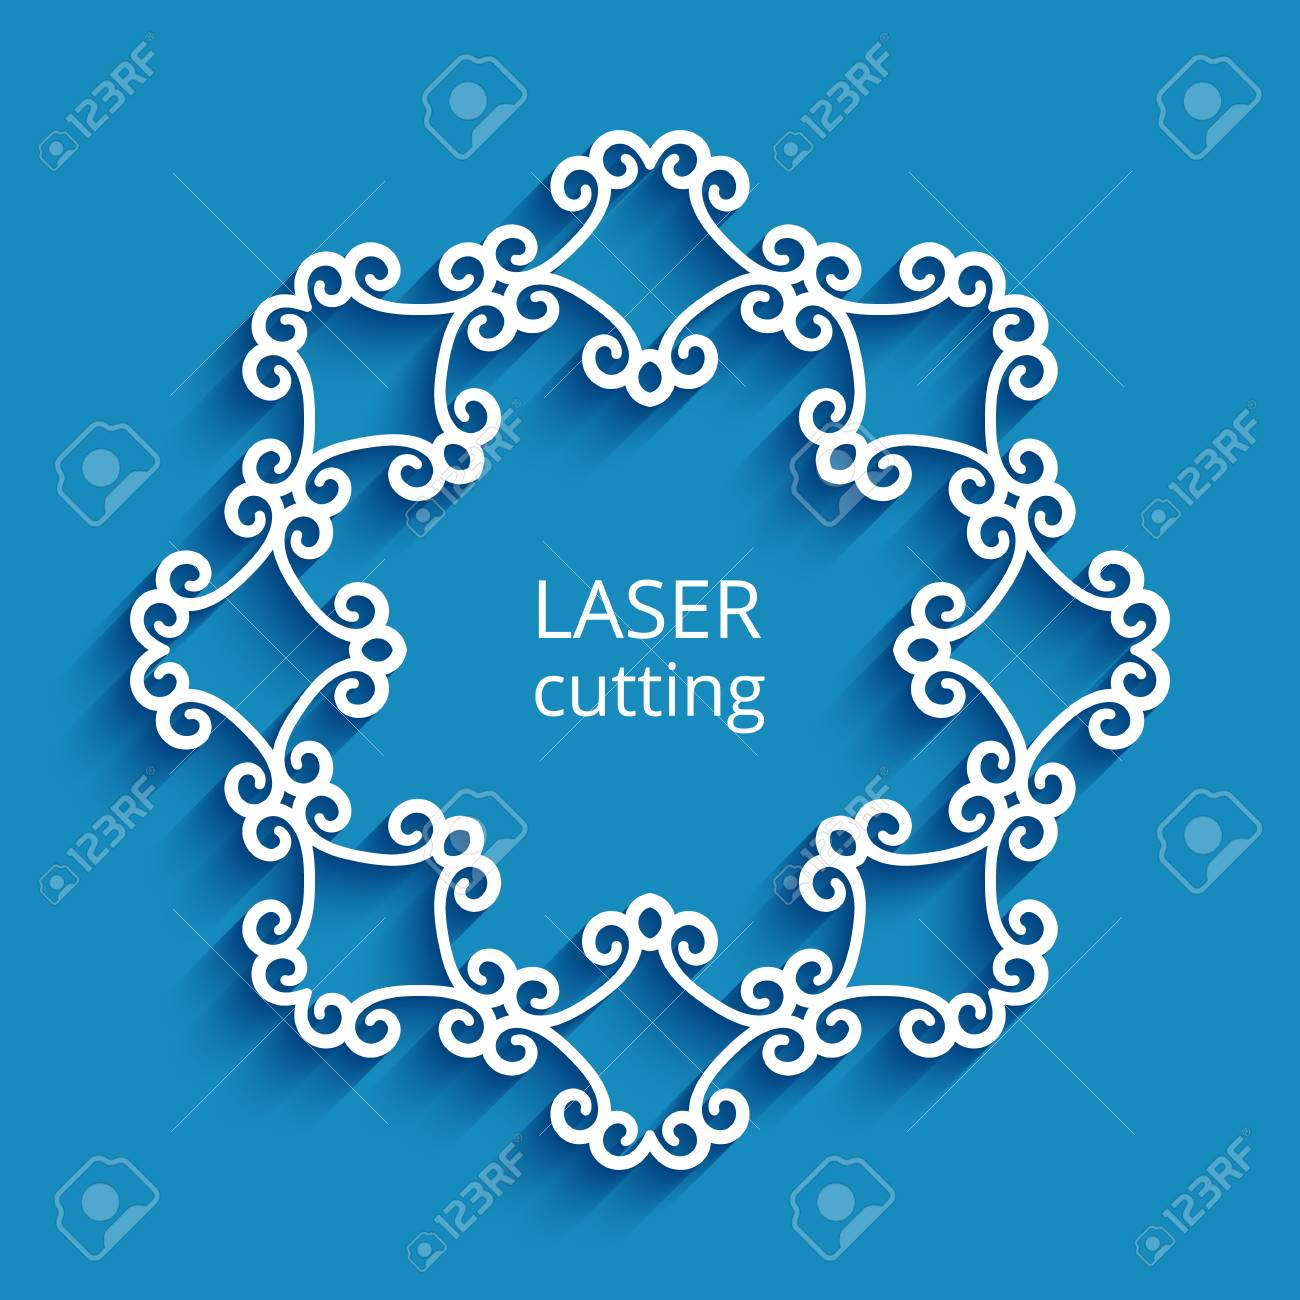 Round vector frame with swirly border ornament, cutout paper circle pattern, decorative template for laser cutting - 104465581